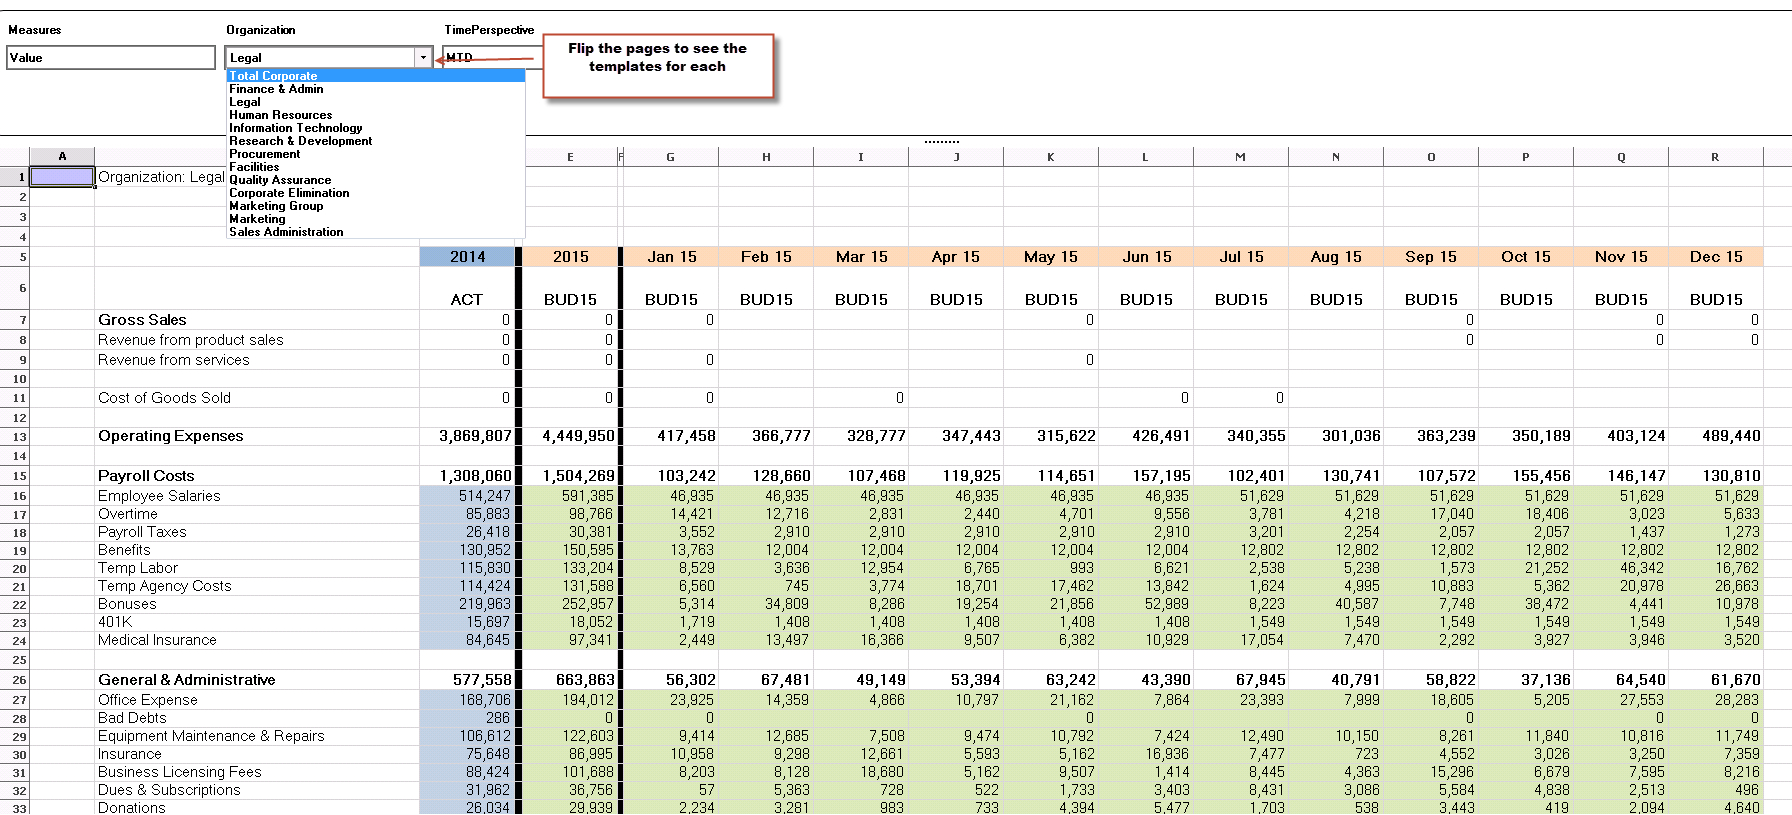 Crop Budget Spreadsheet Pertaining To Information Technology Budget Template Example Of Crop Spreadsheet